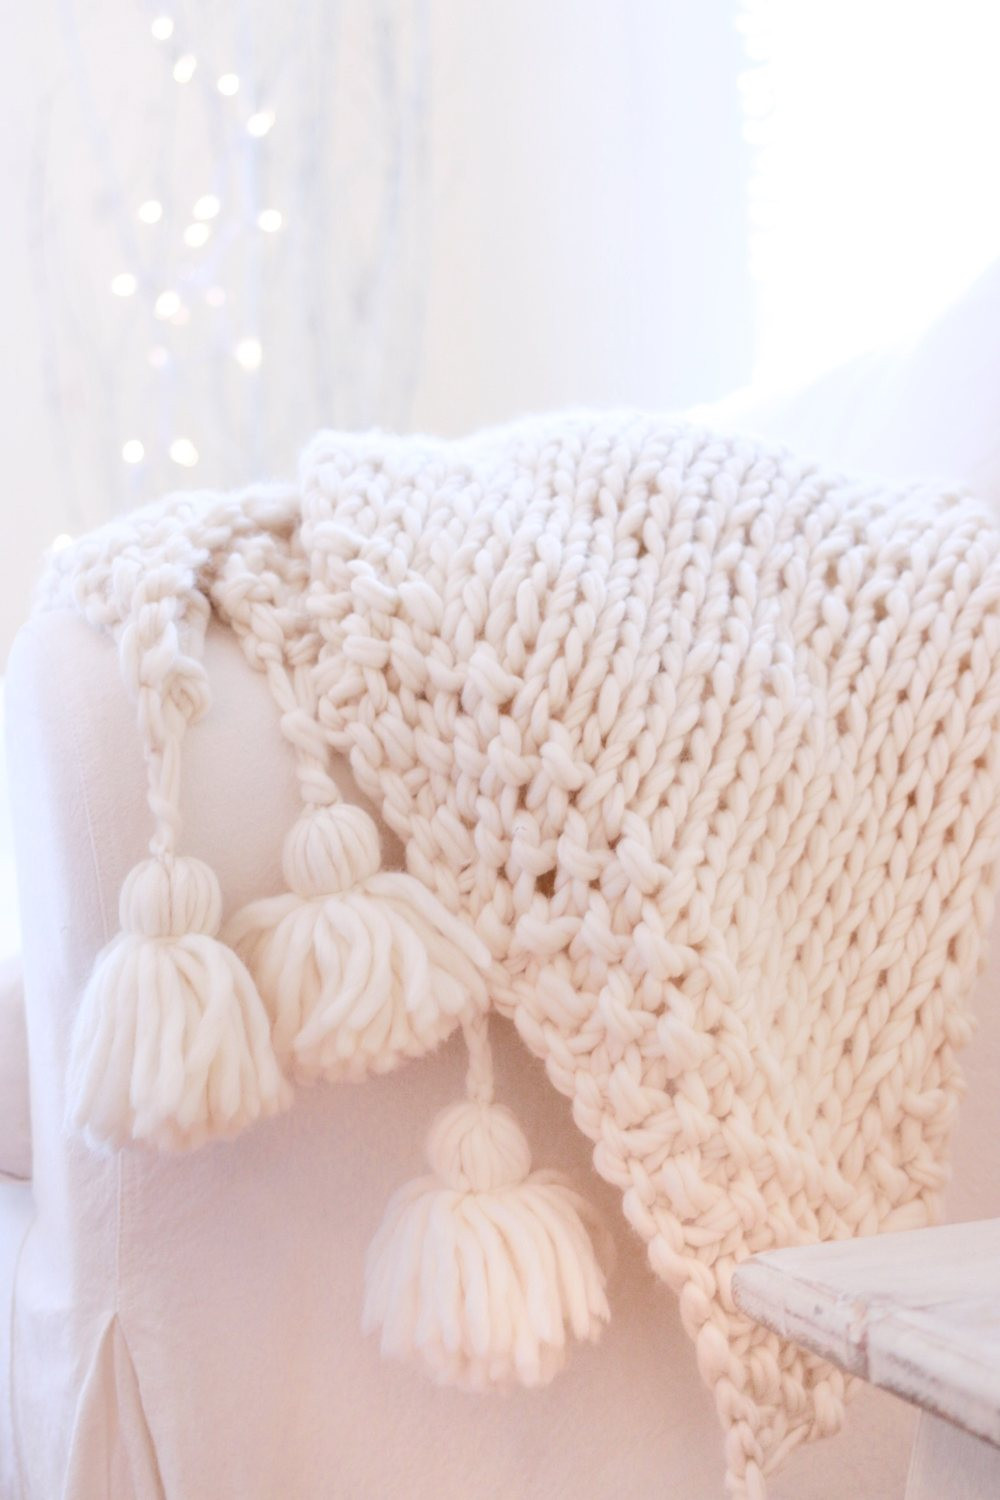 Chunky Wool Blanket Inspirational Easy Diy Chunky Knit Blankets to Cozy Up with Homelovr Of Incredible 43 Pictures Chunky Wool Blanket